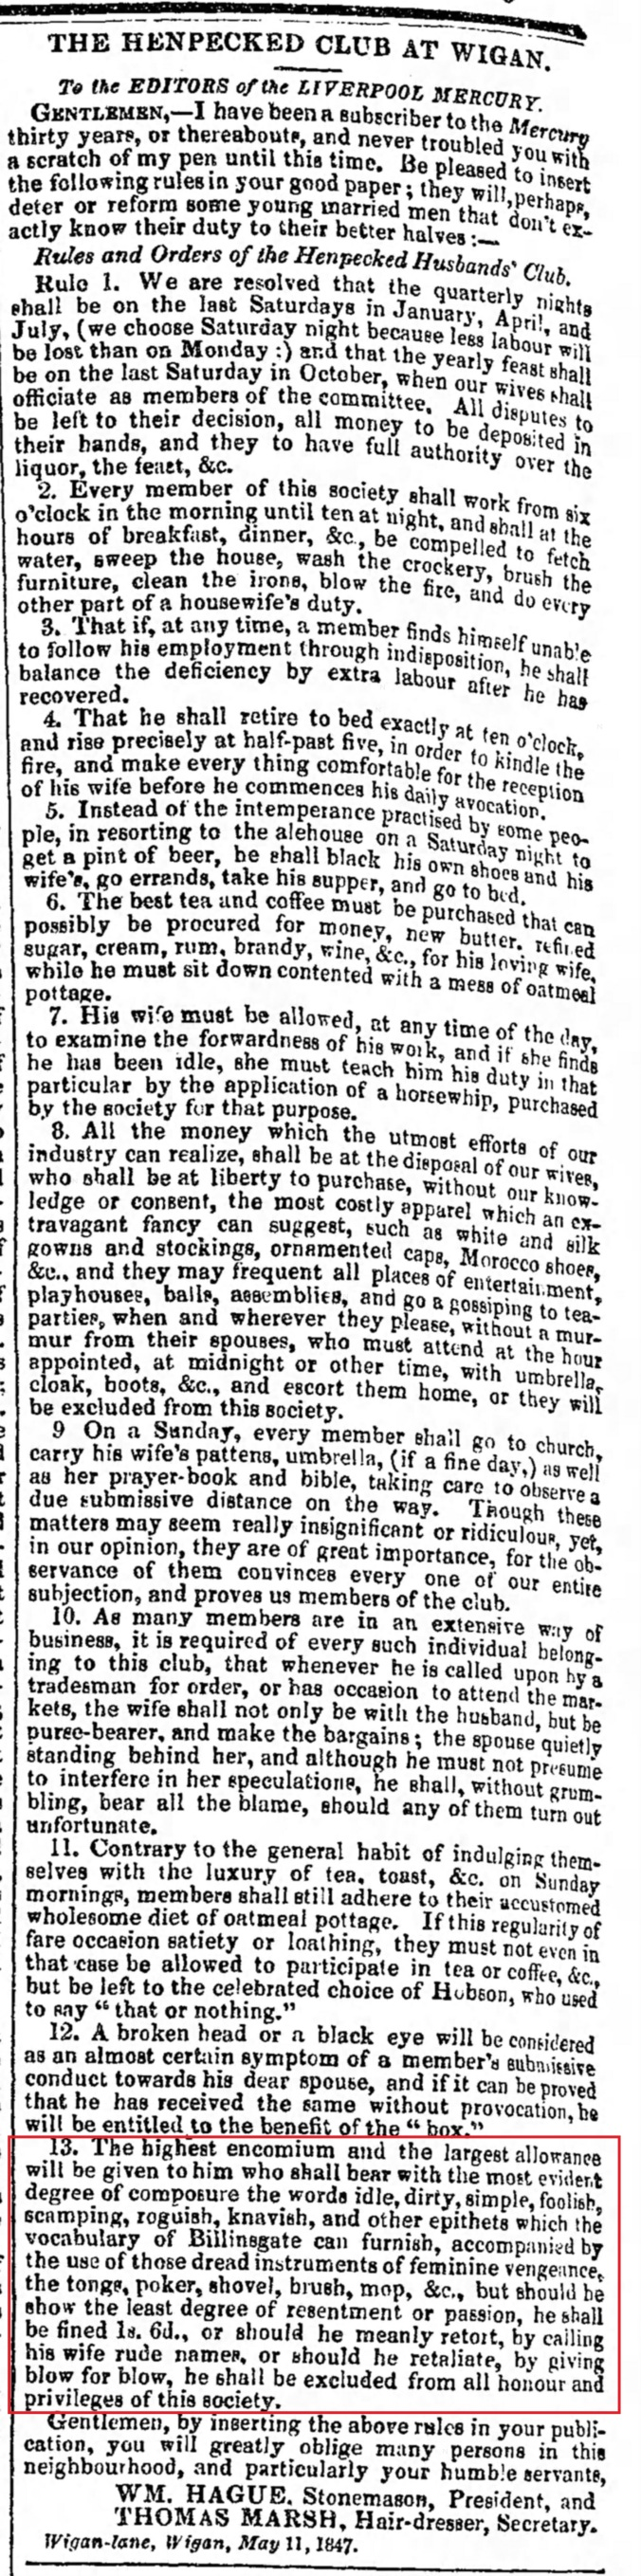 Liverpool Mercury etc Tue Jun 15 - 1847